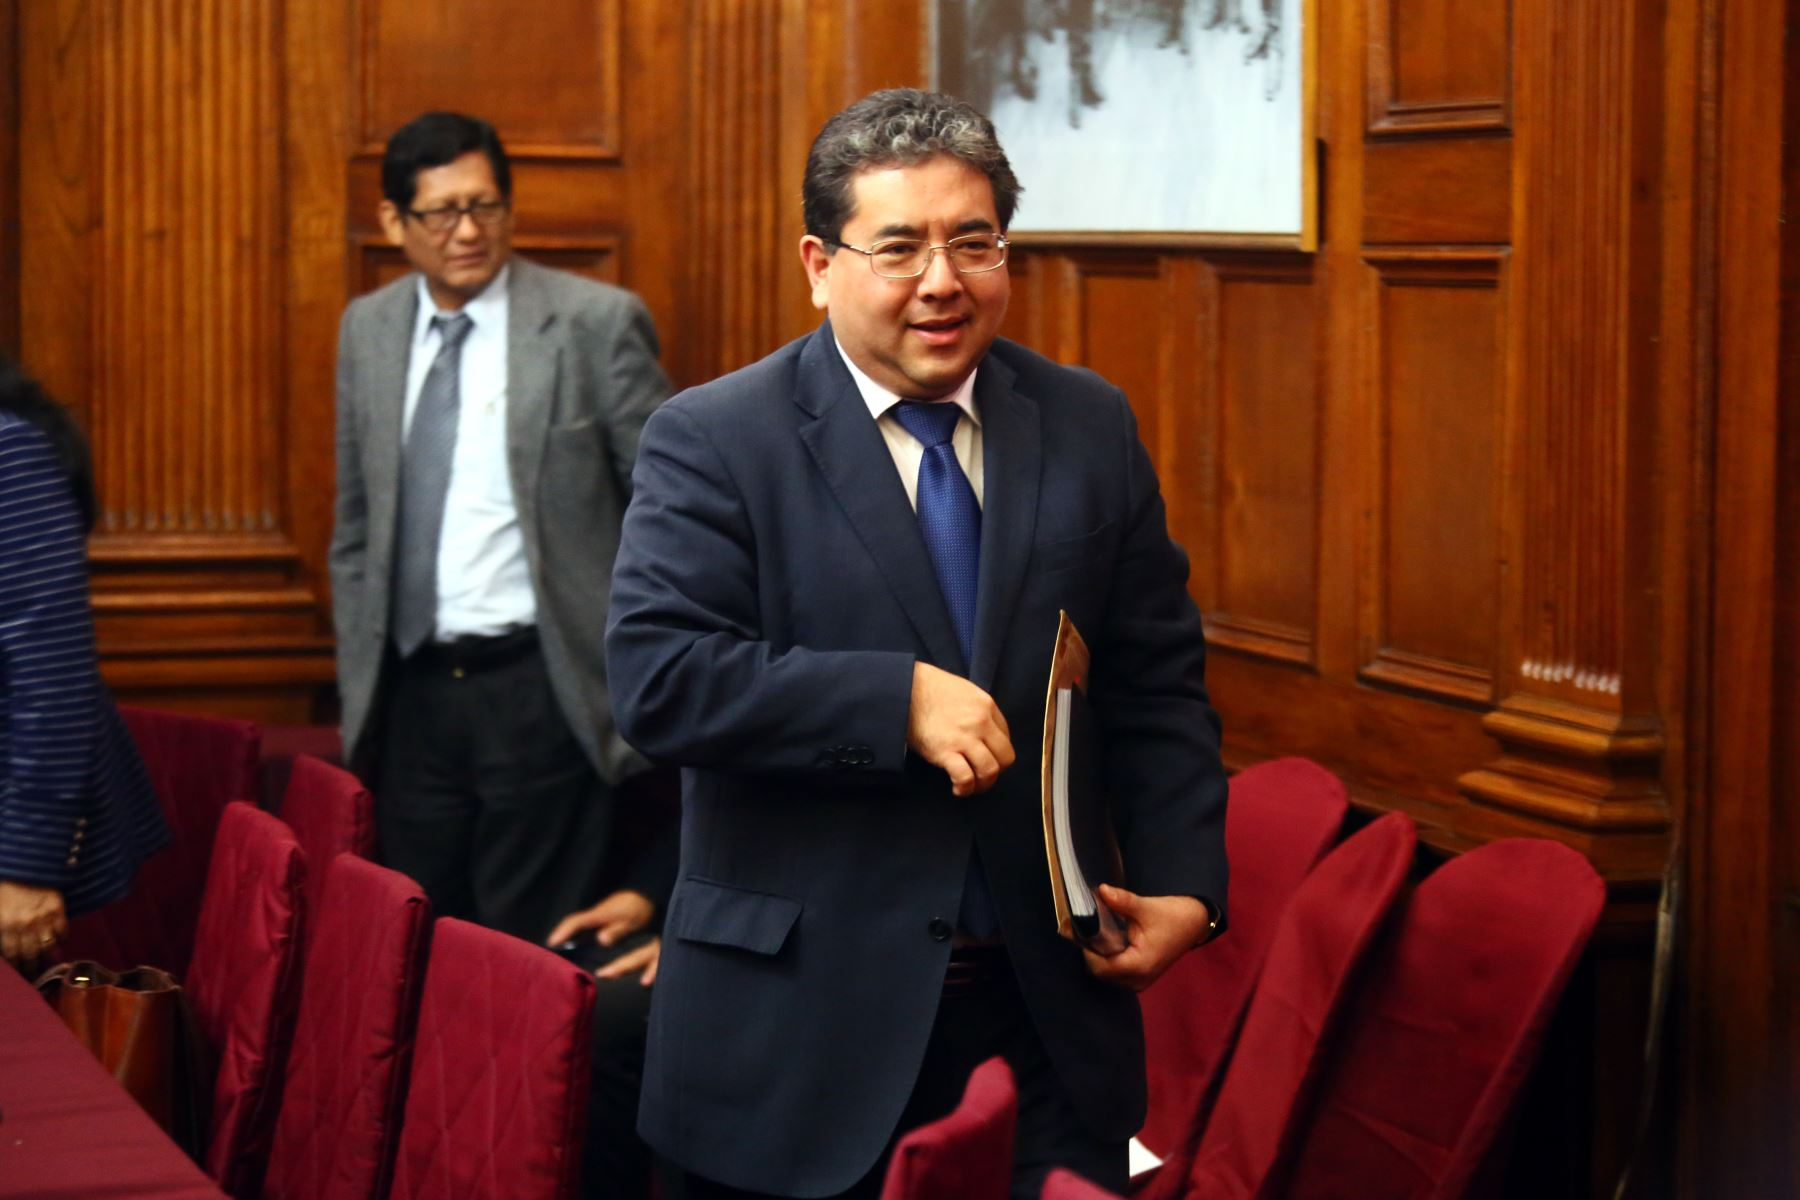 Nelson Shack, candidato a contralor general.